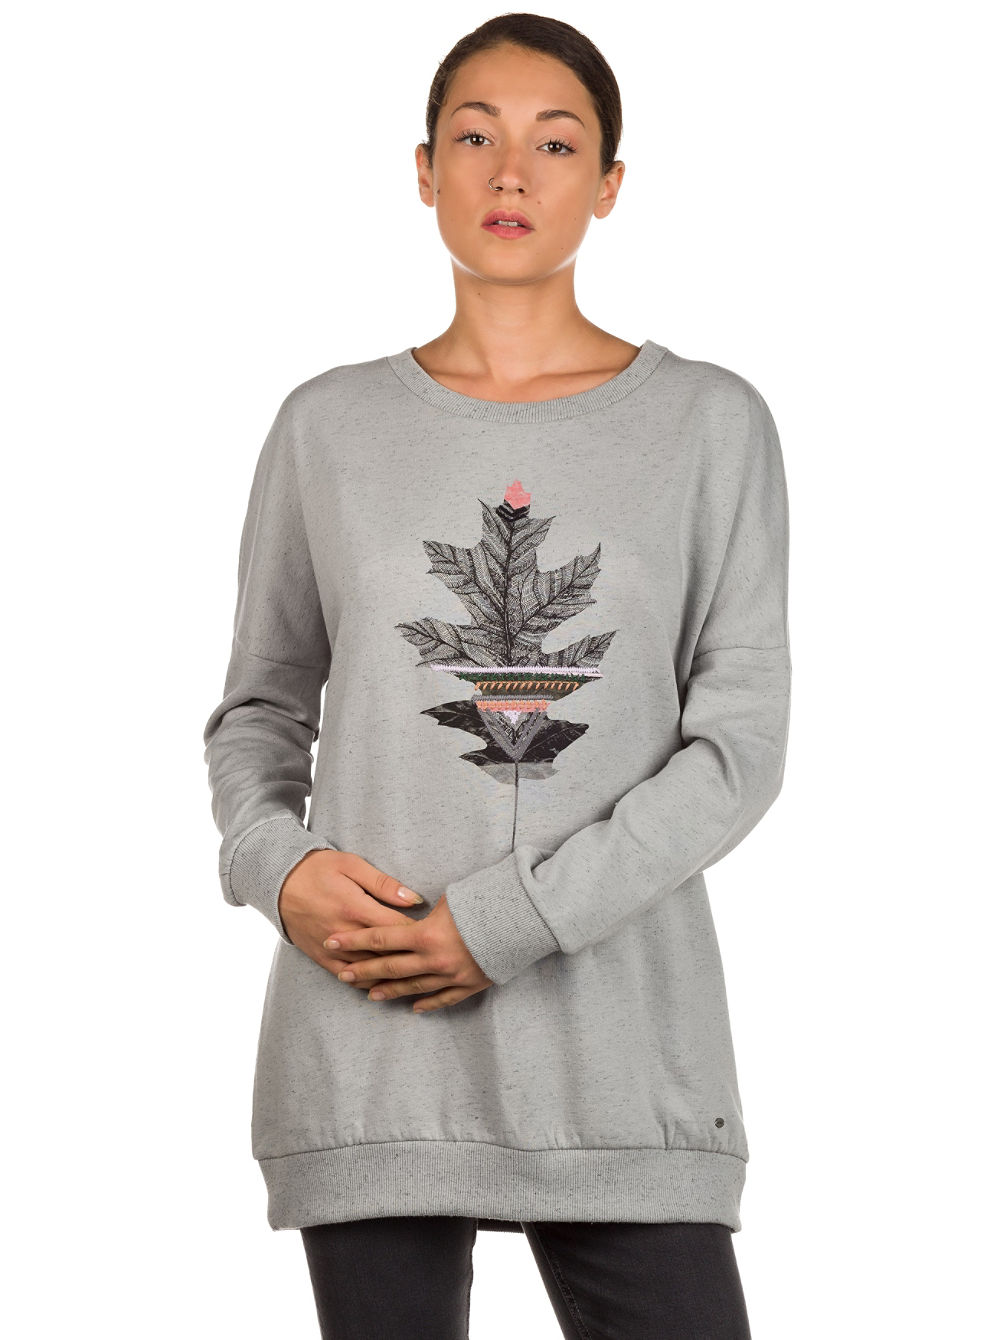 Peaceful Pines Sweater